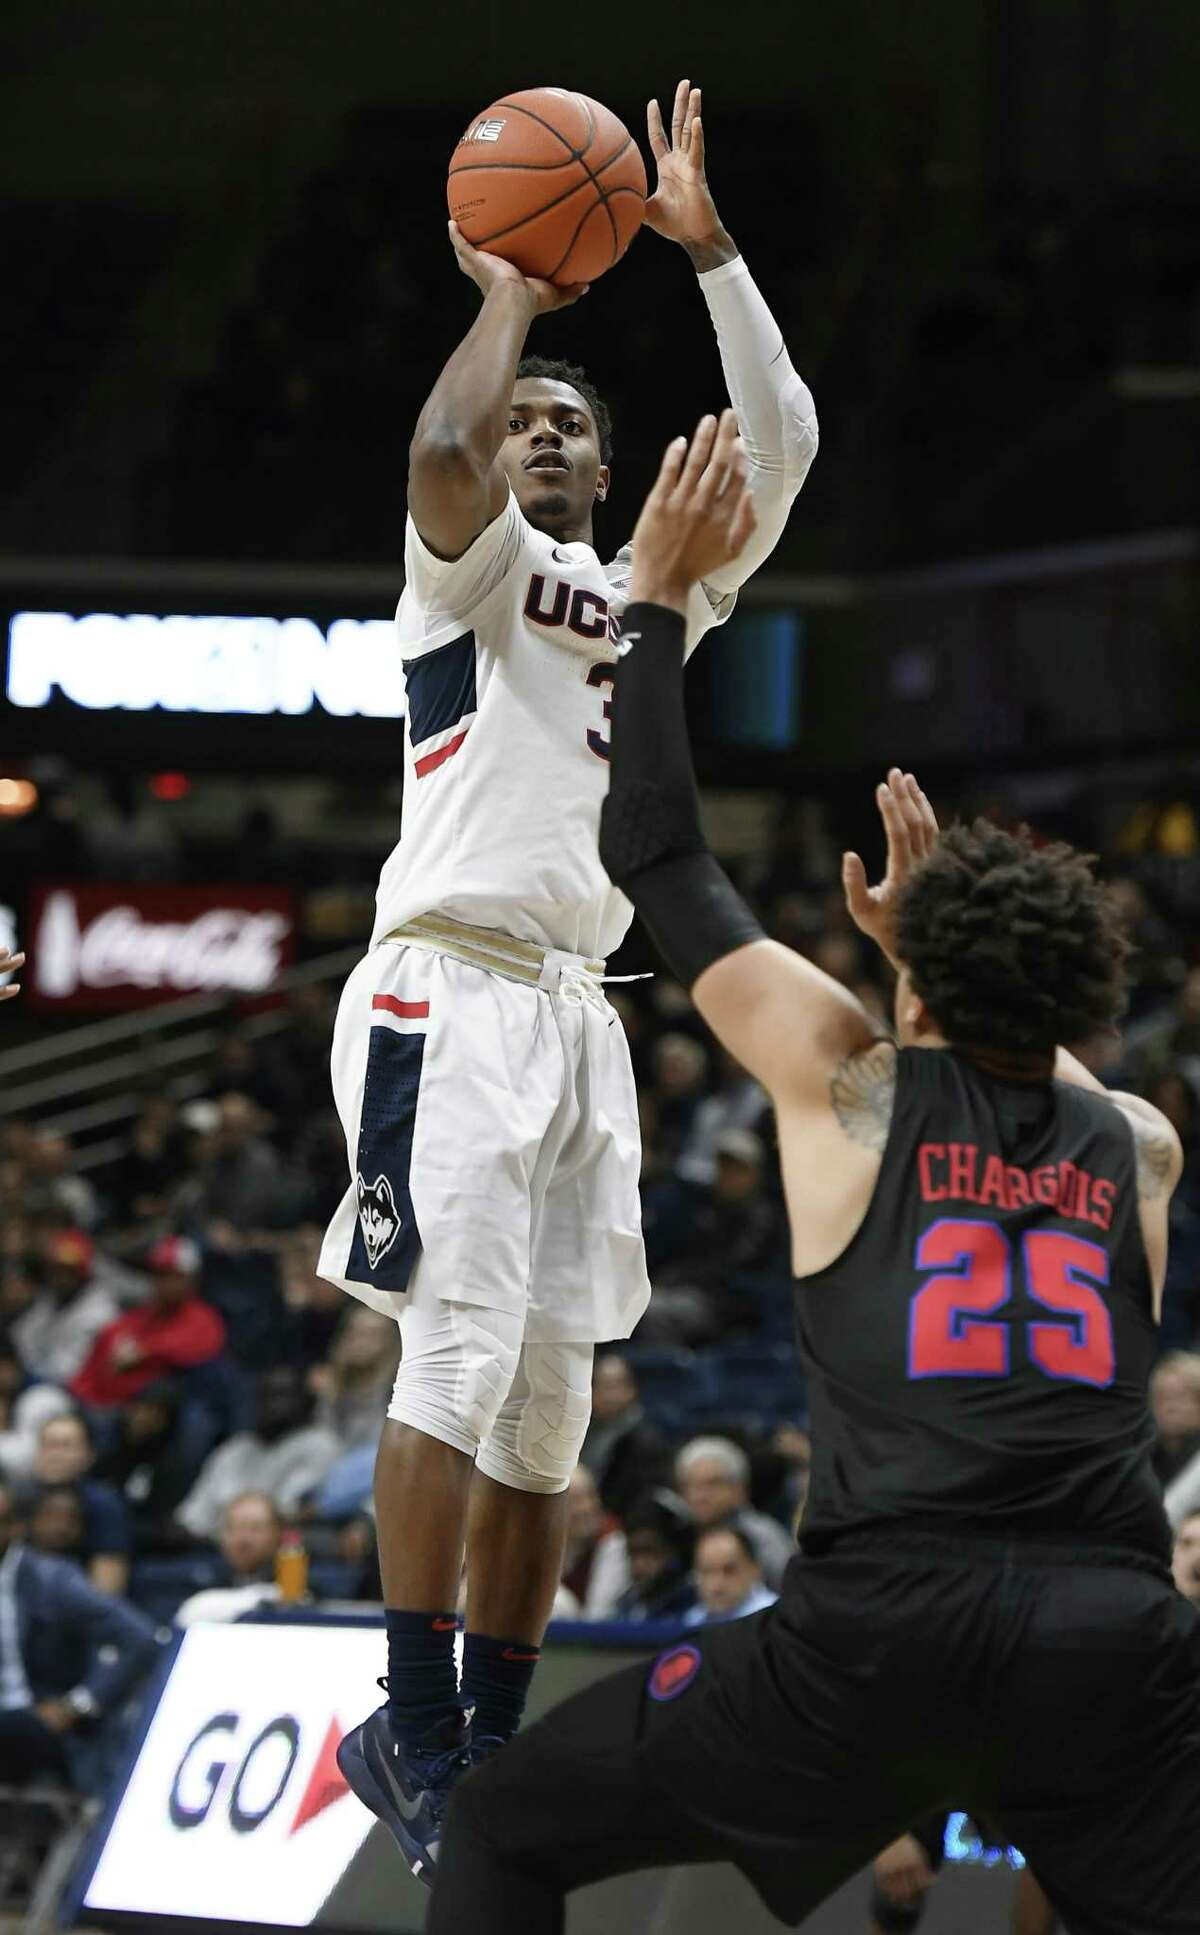 UConn's Alterique Gilbert, top, shoots over SMU's Ethan Chargois during Thursday night's game in Storrs.